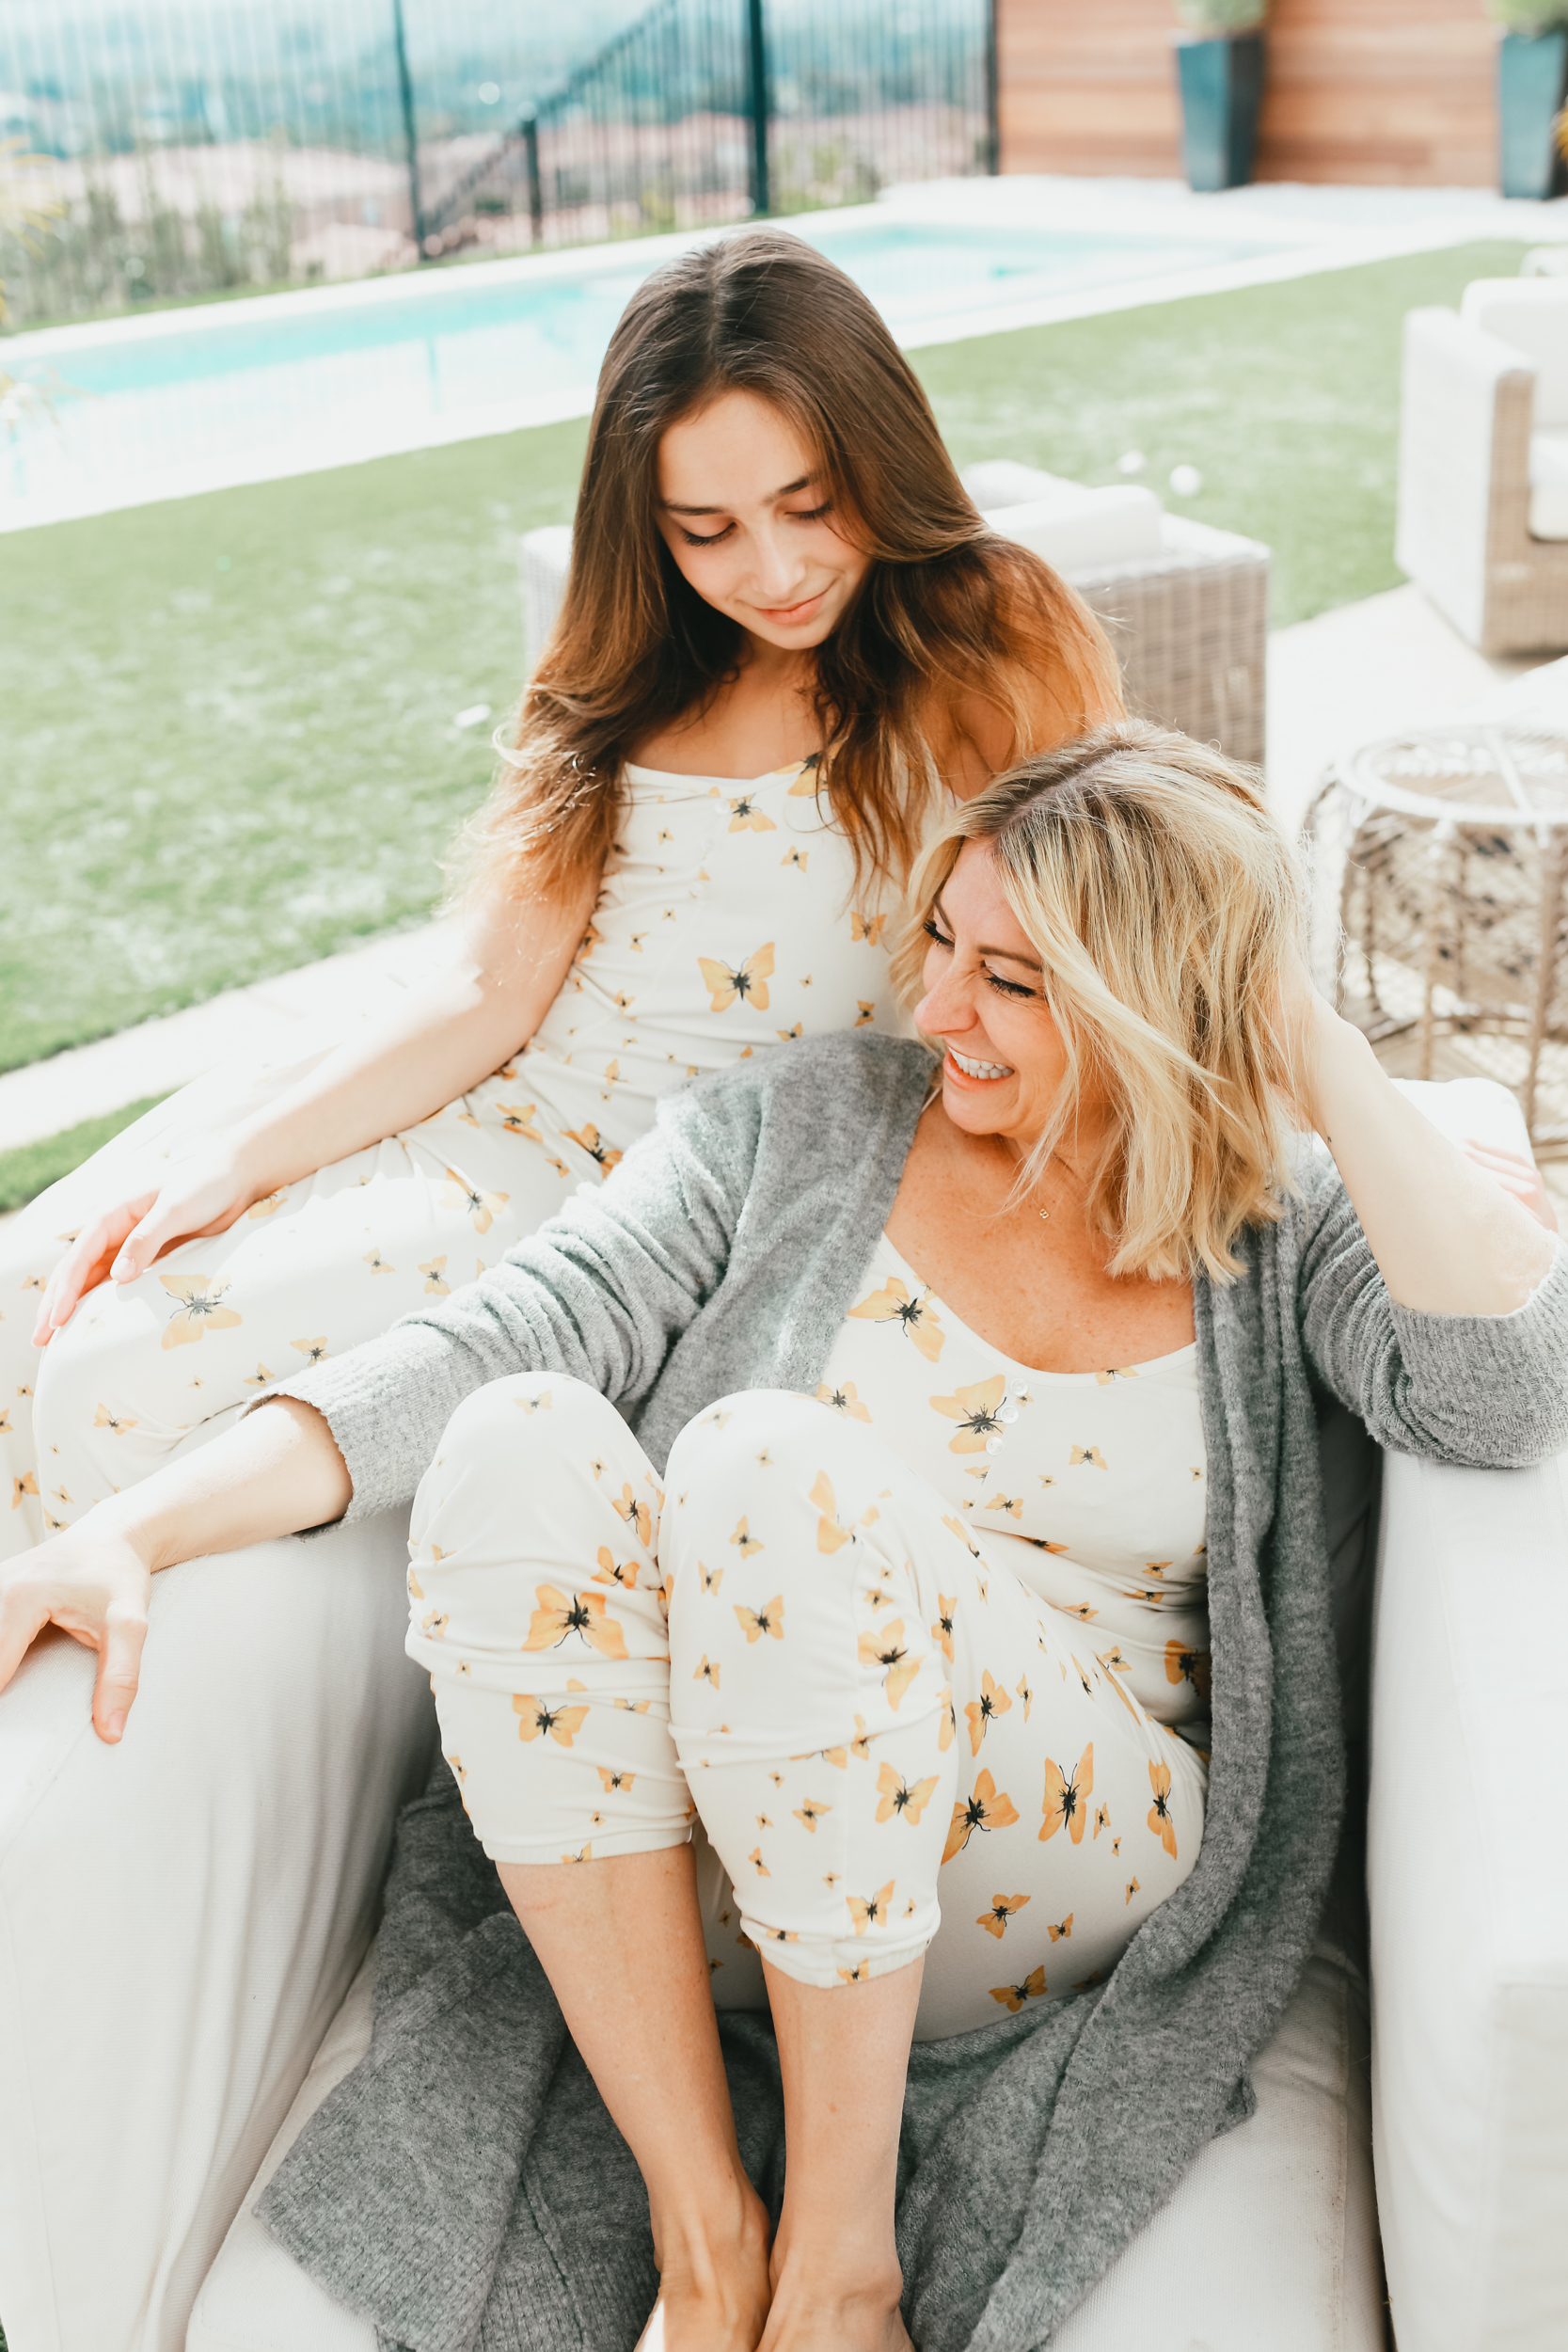 mom and daughter sitting together